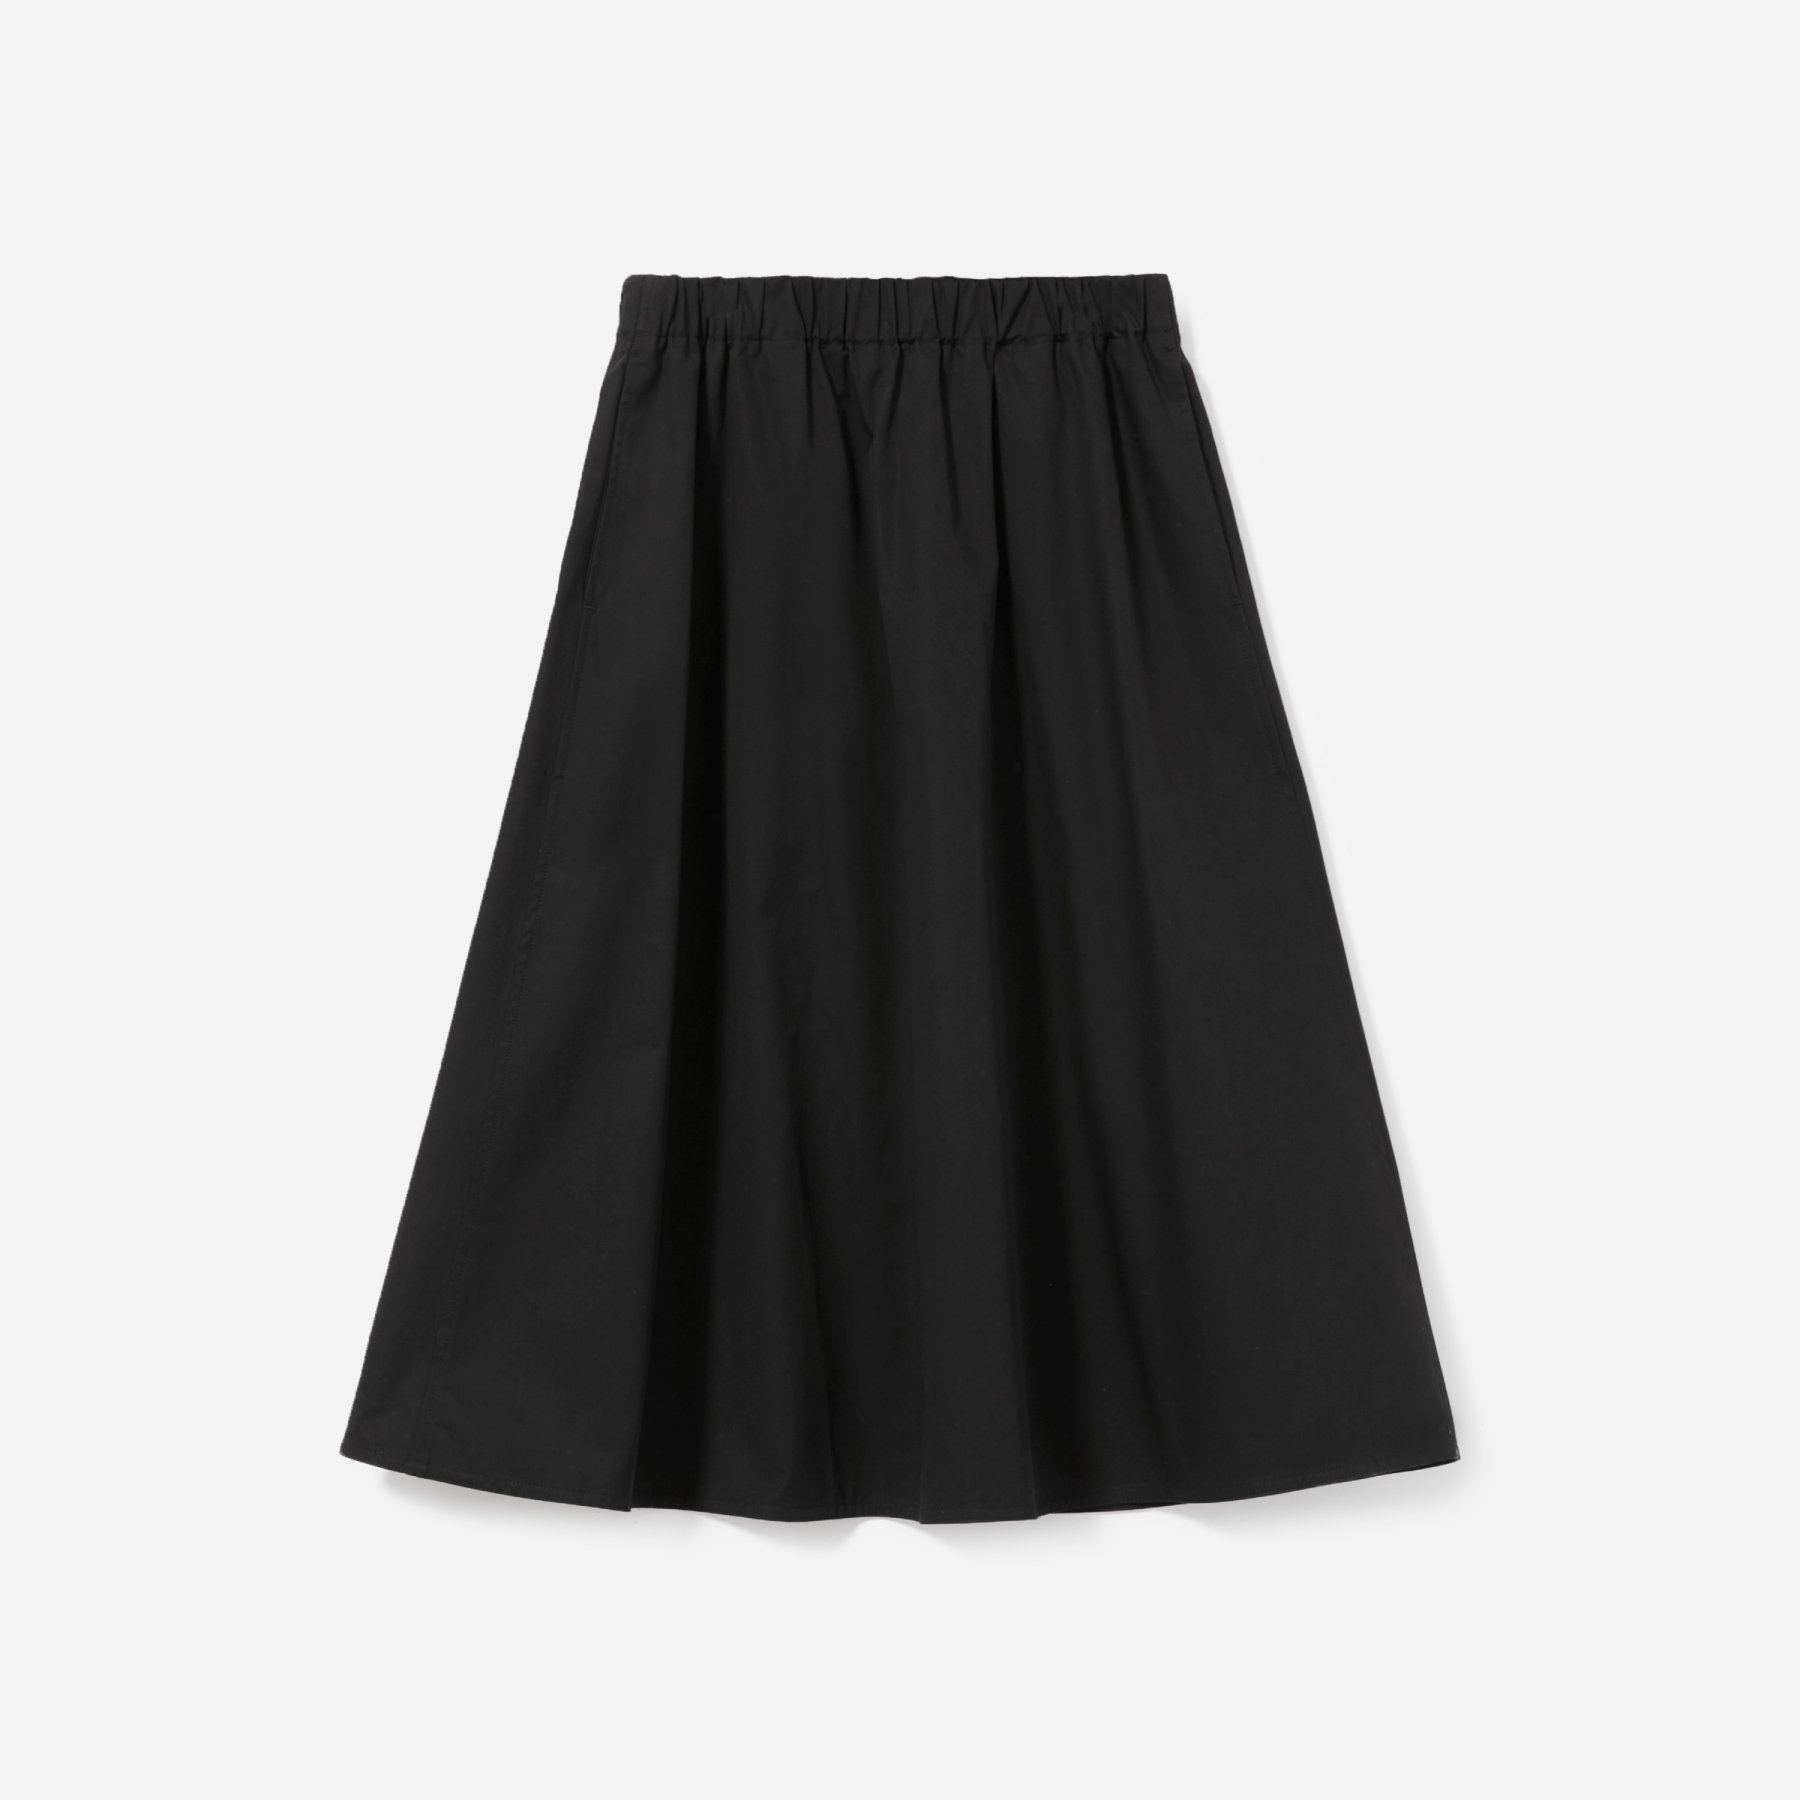 Everlane clean cotton A-line skirt